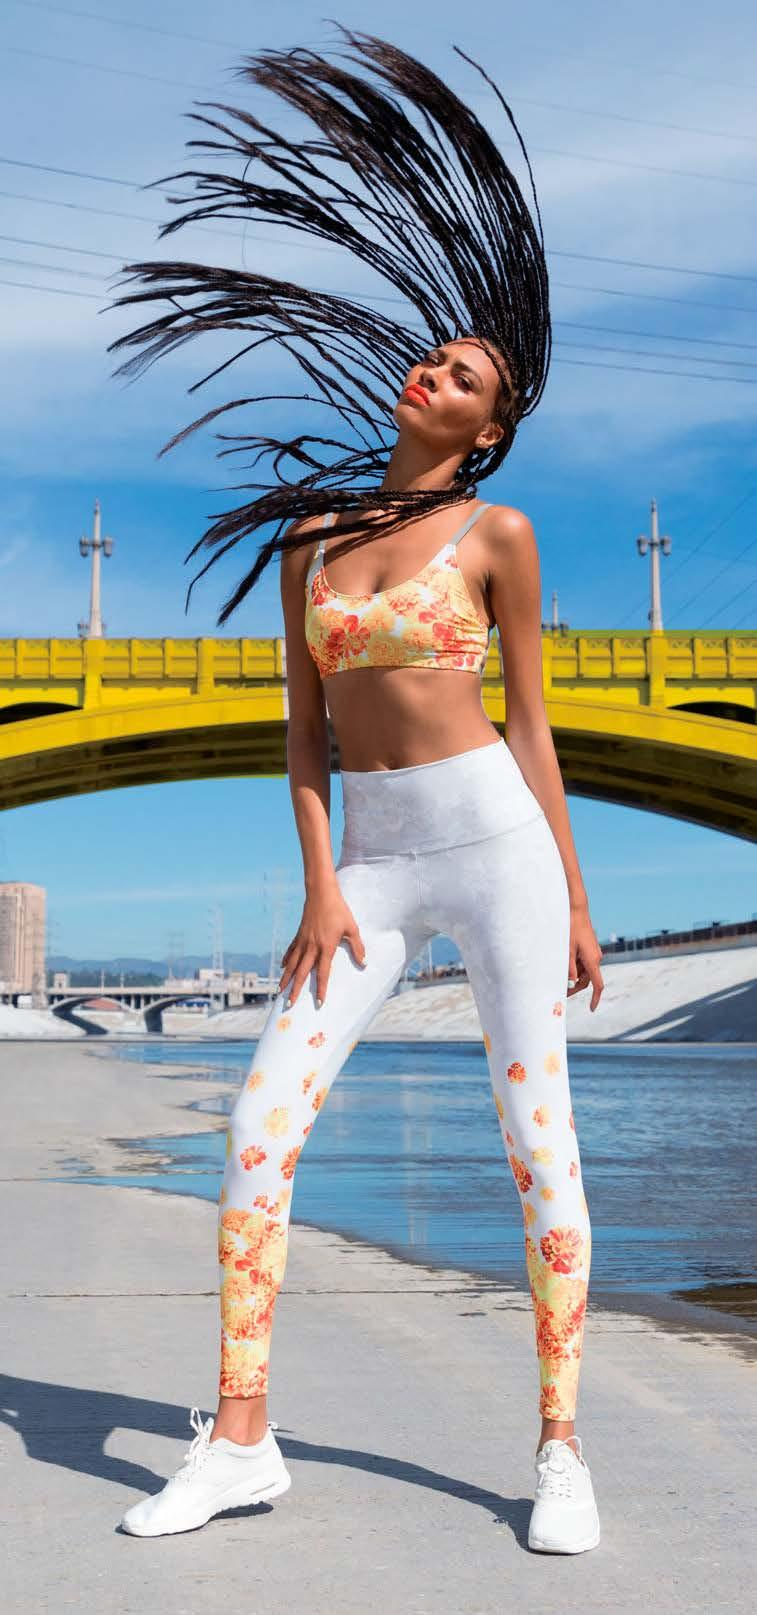 sportstyle TRENDS spinners, extra long for yogis (to wrap the heel) and midi (7/8) for runners. Through color, print and shaping, the legging should emotionally inspire the wearer.